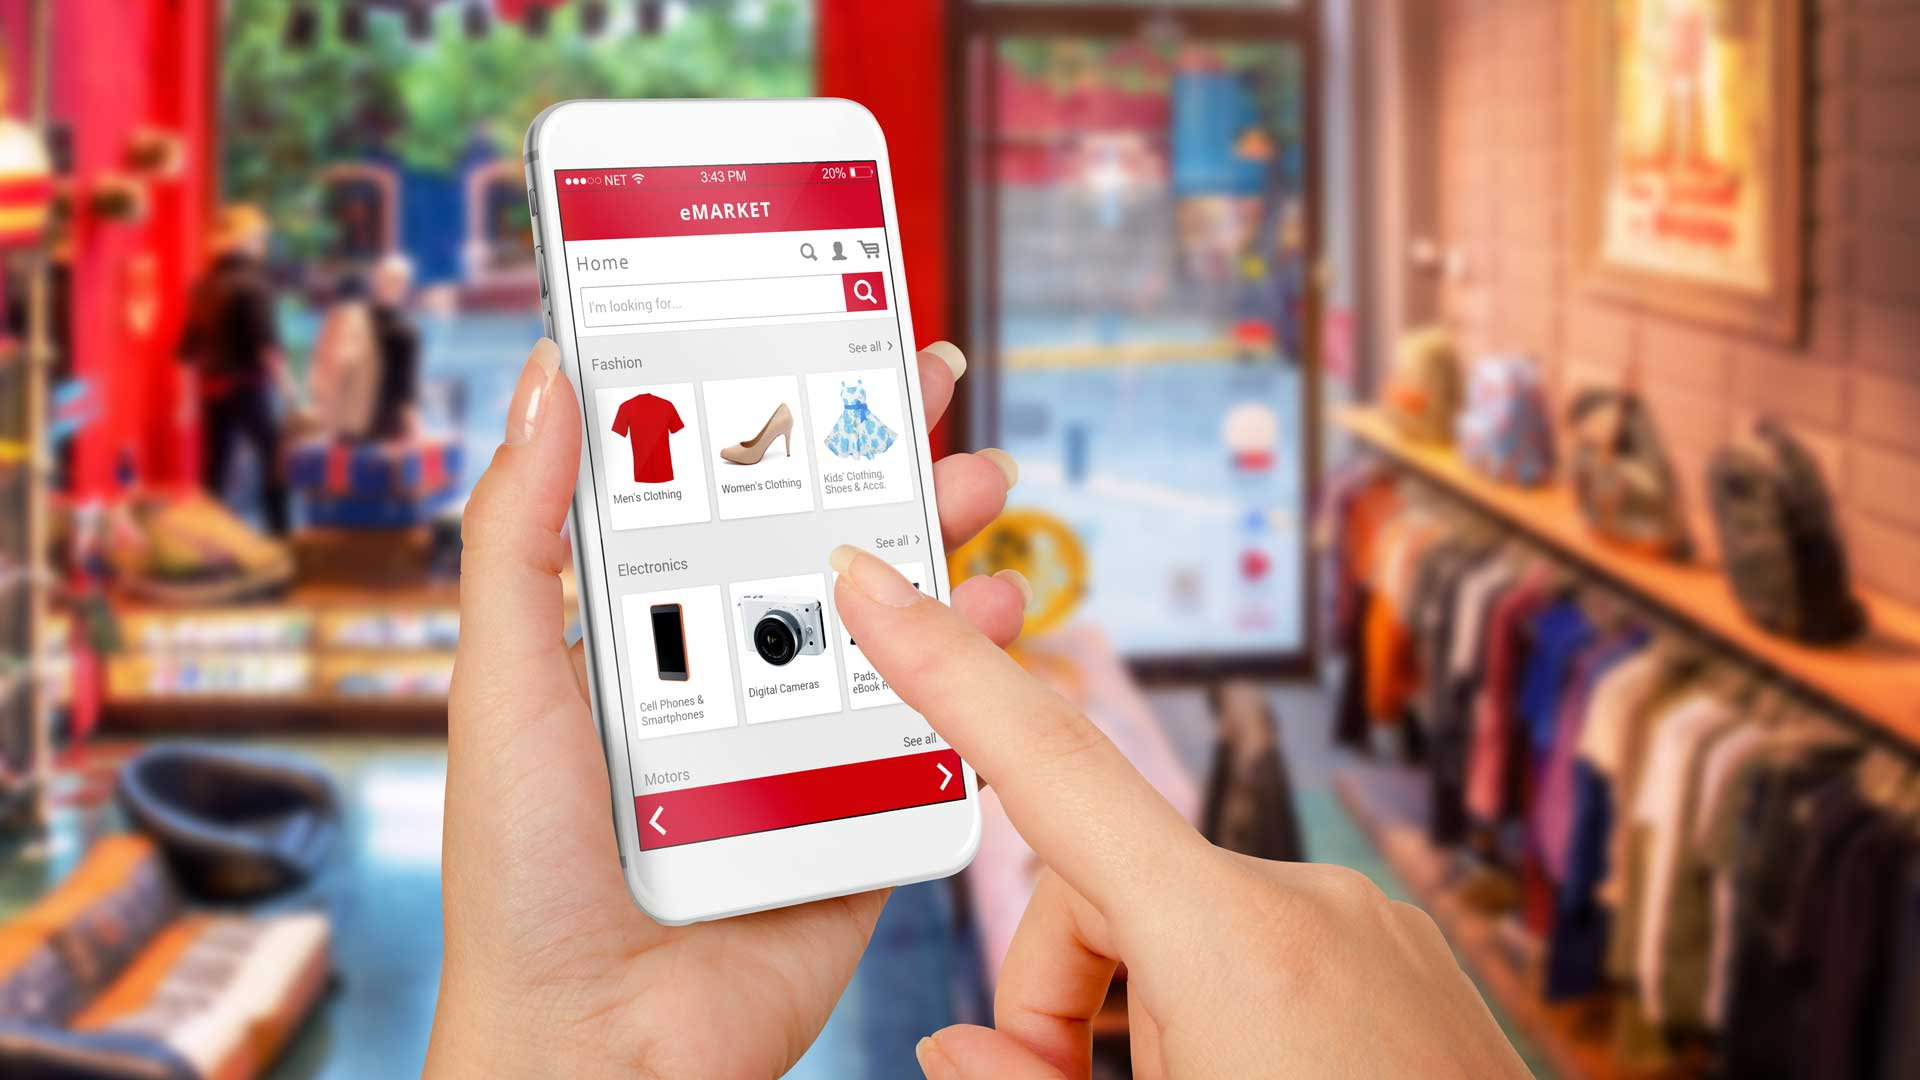 From Black Friday to Cyber Monday, consumers spend more than $4 billion on mobile